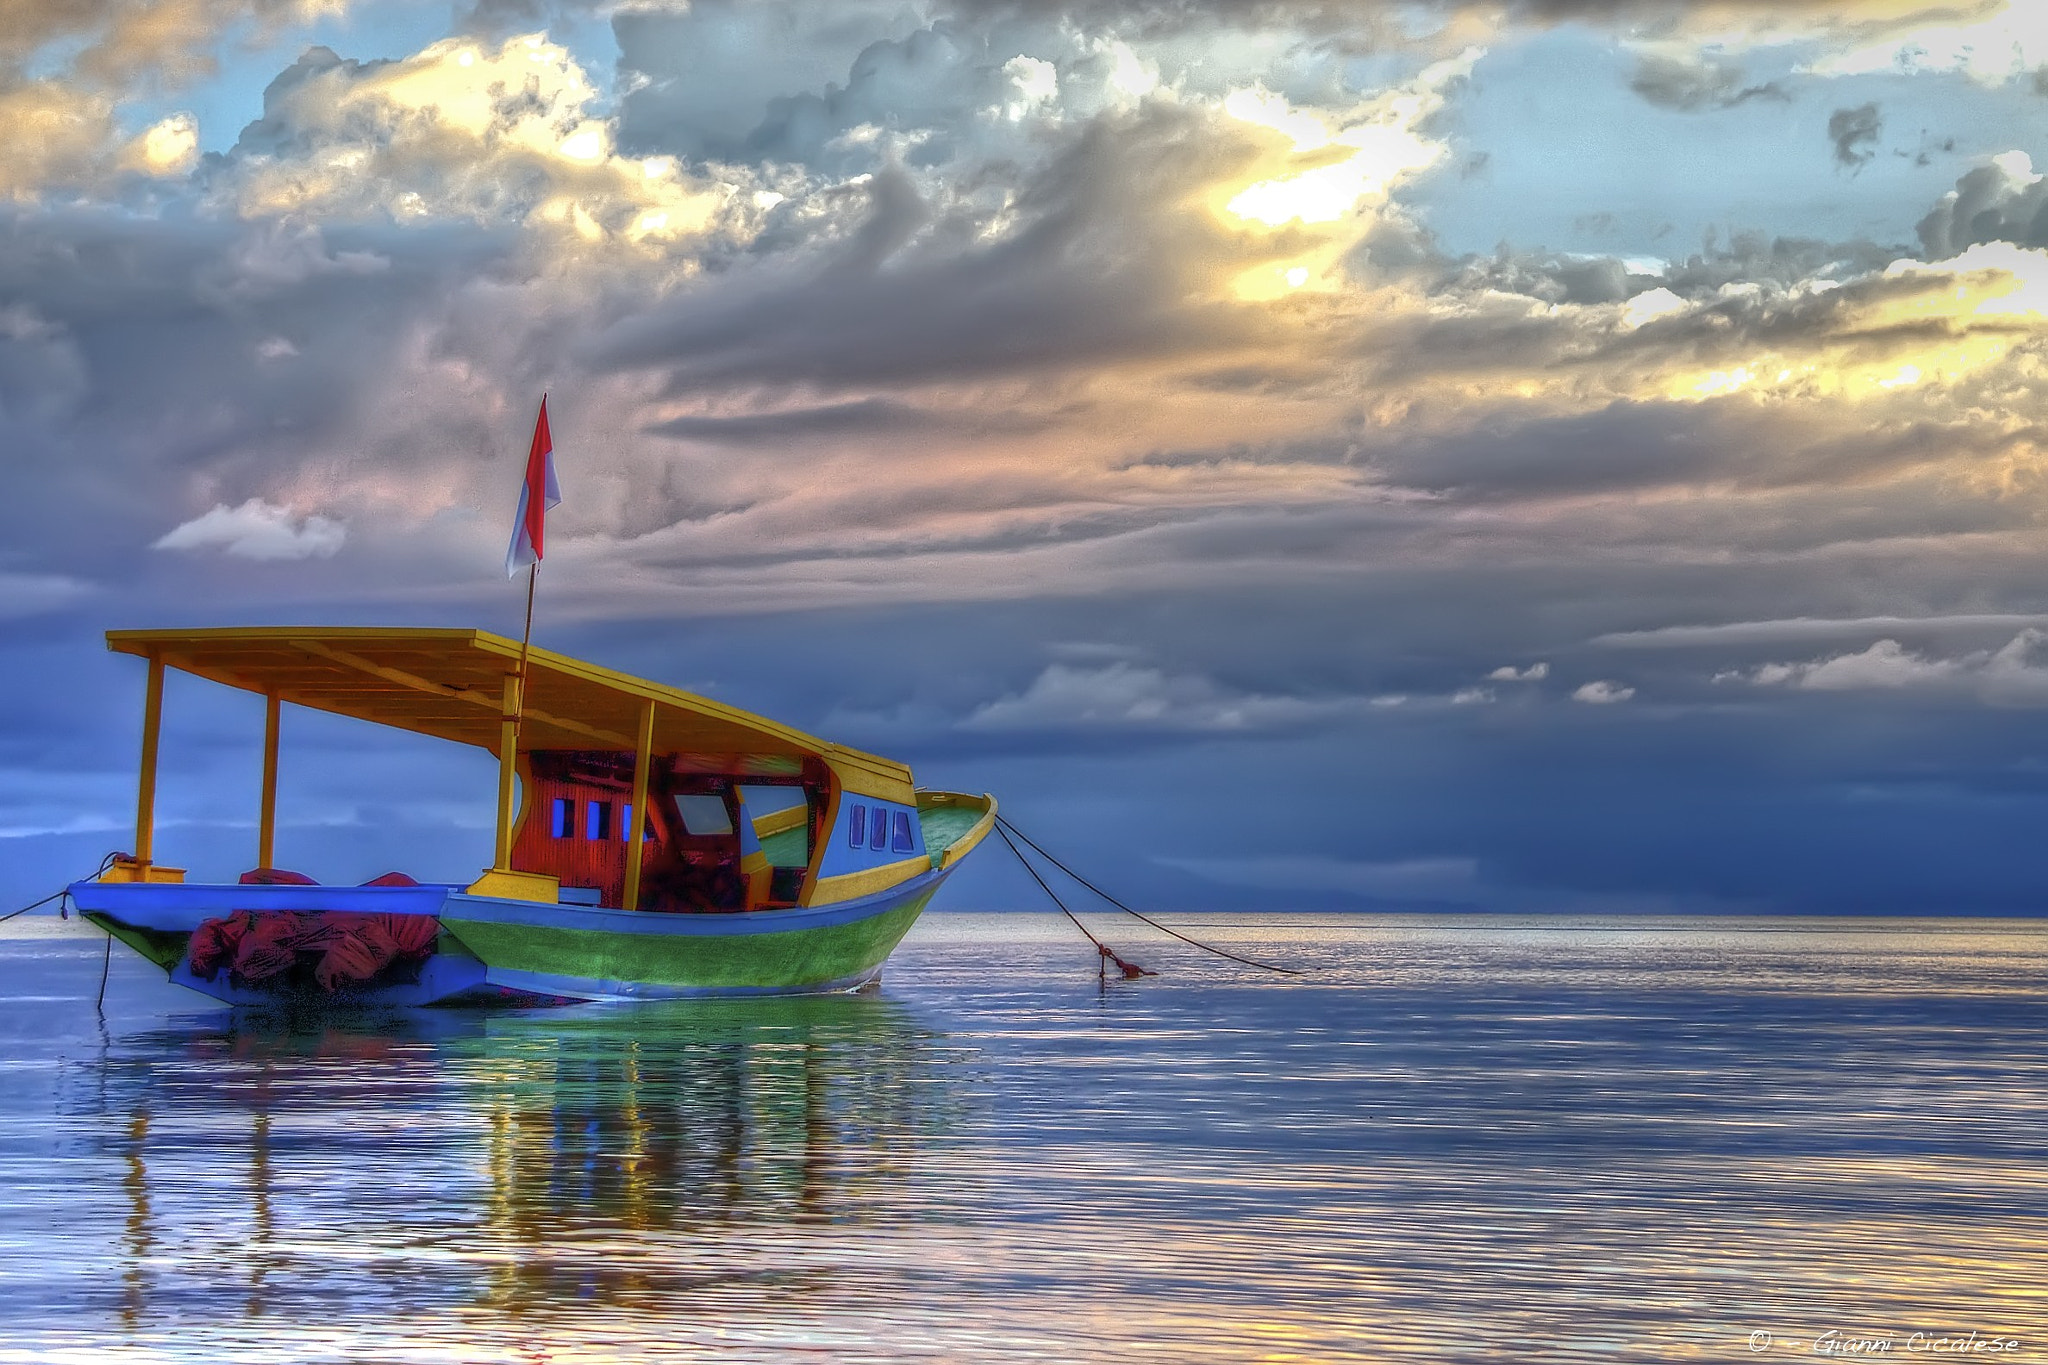 Photograph Boat Sunrise in Bunaken by Gianni Cicalese on 500px